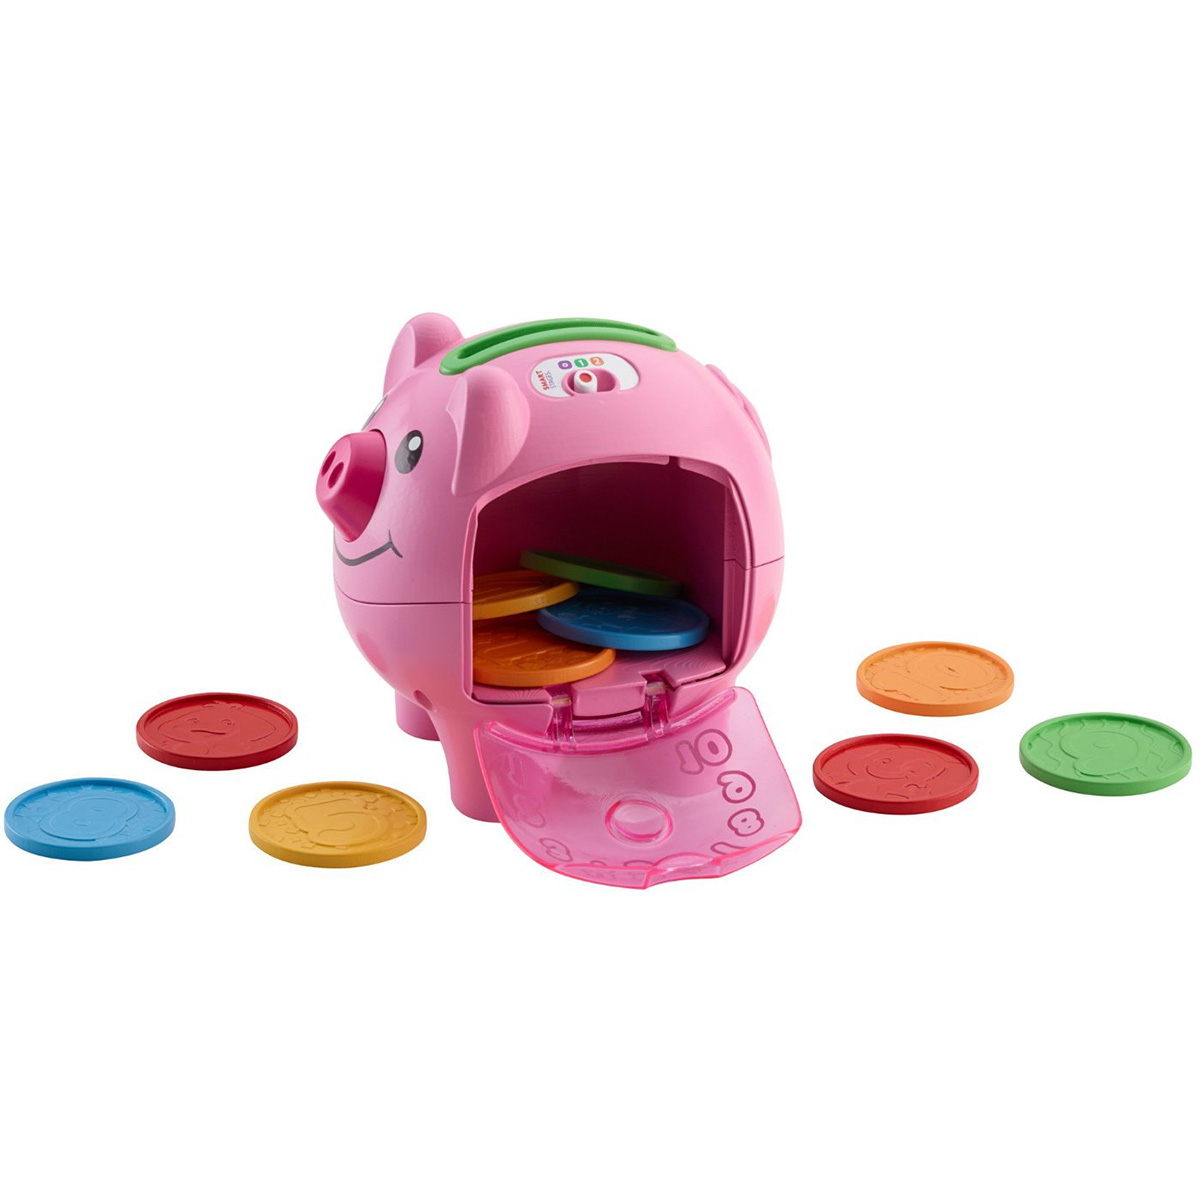 Heo con vui vẻ Fisher Price CDG67